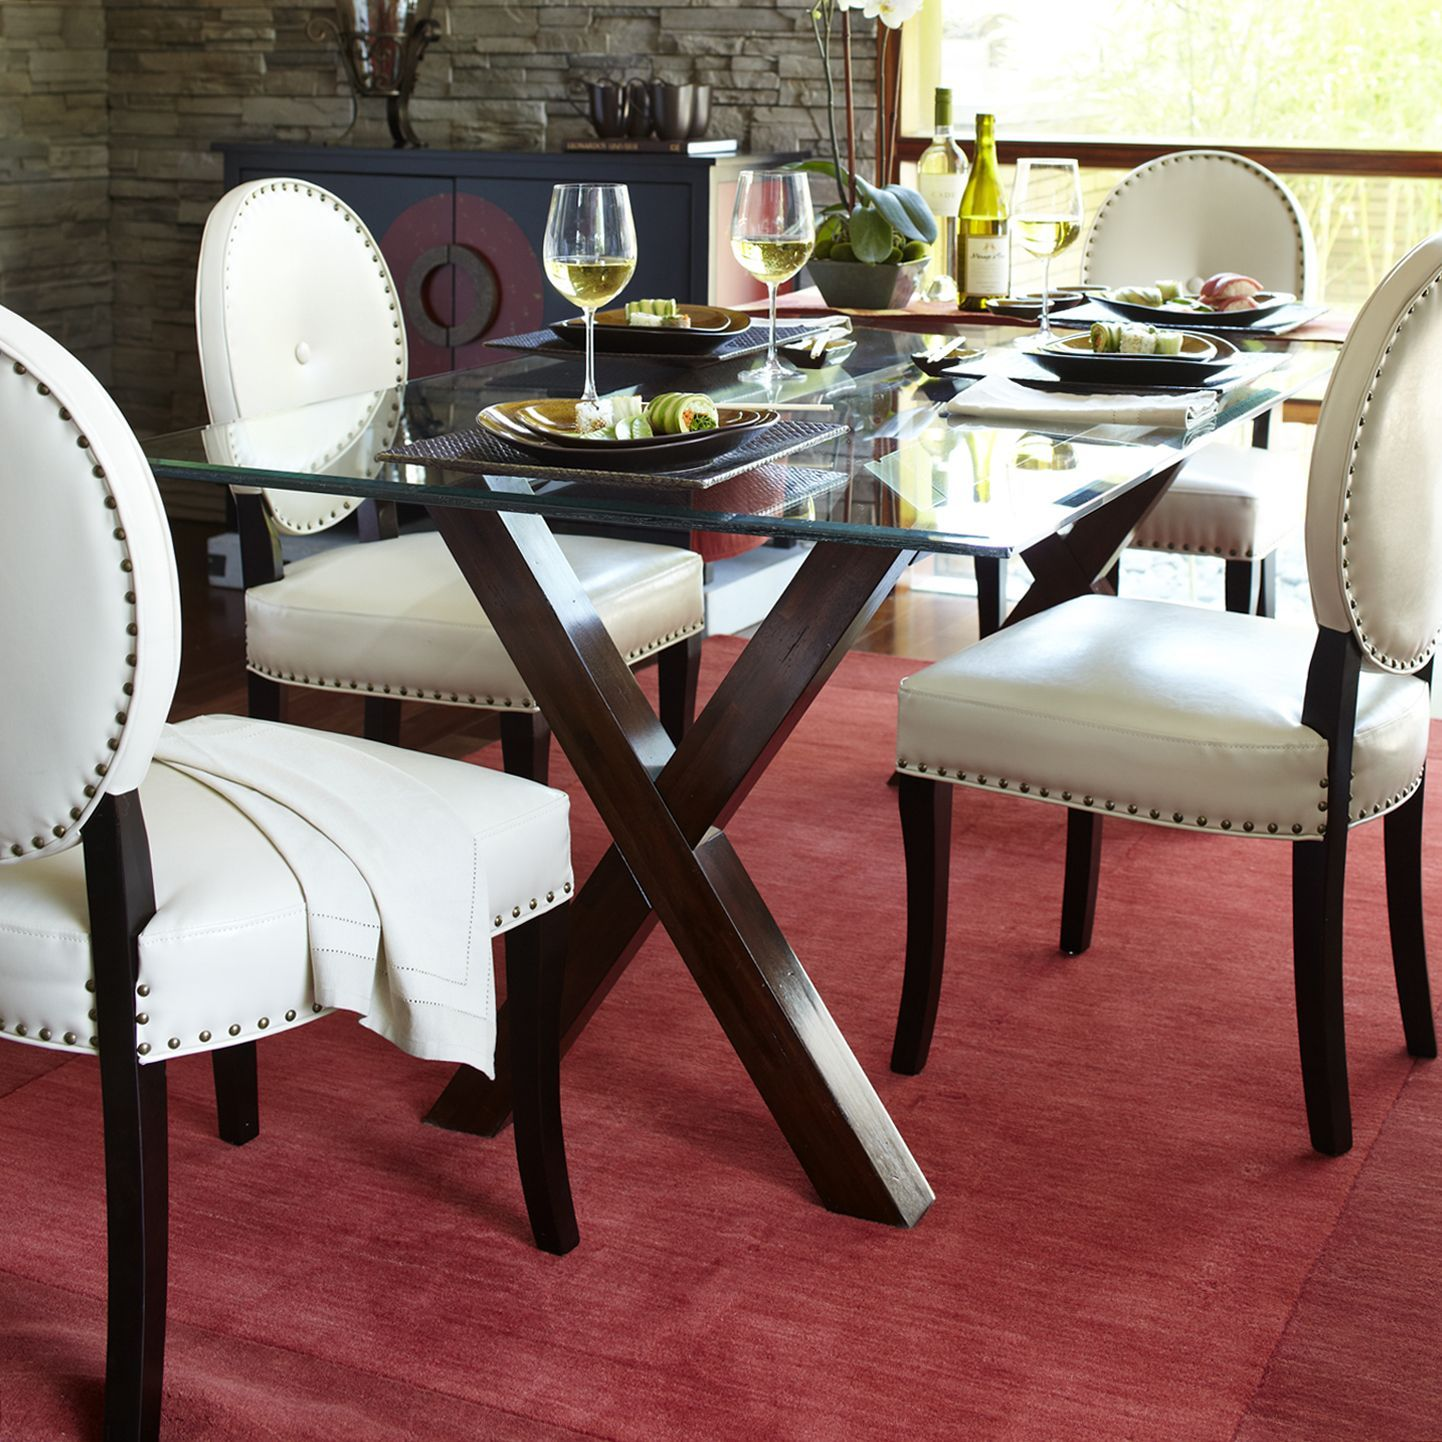 Swell Cadence Ivory Dining Chair With Espresso Wood Products Caraccident5 Cool Chair Designs And Ideas Caraccident5Info